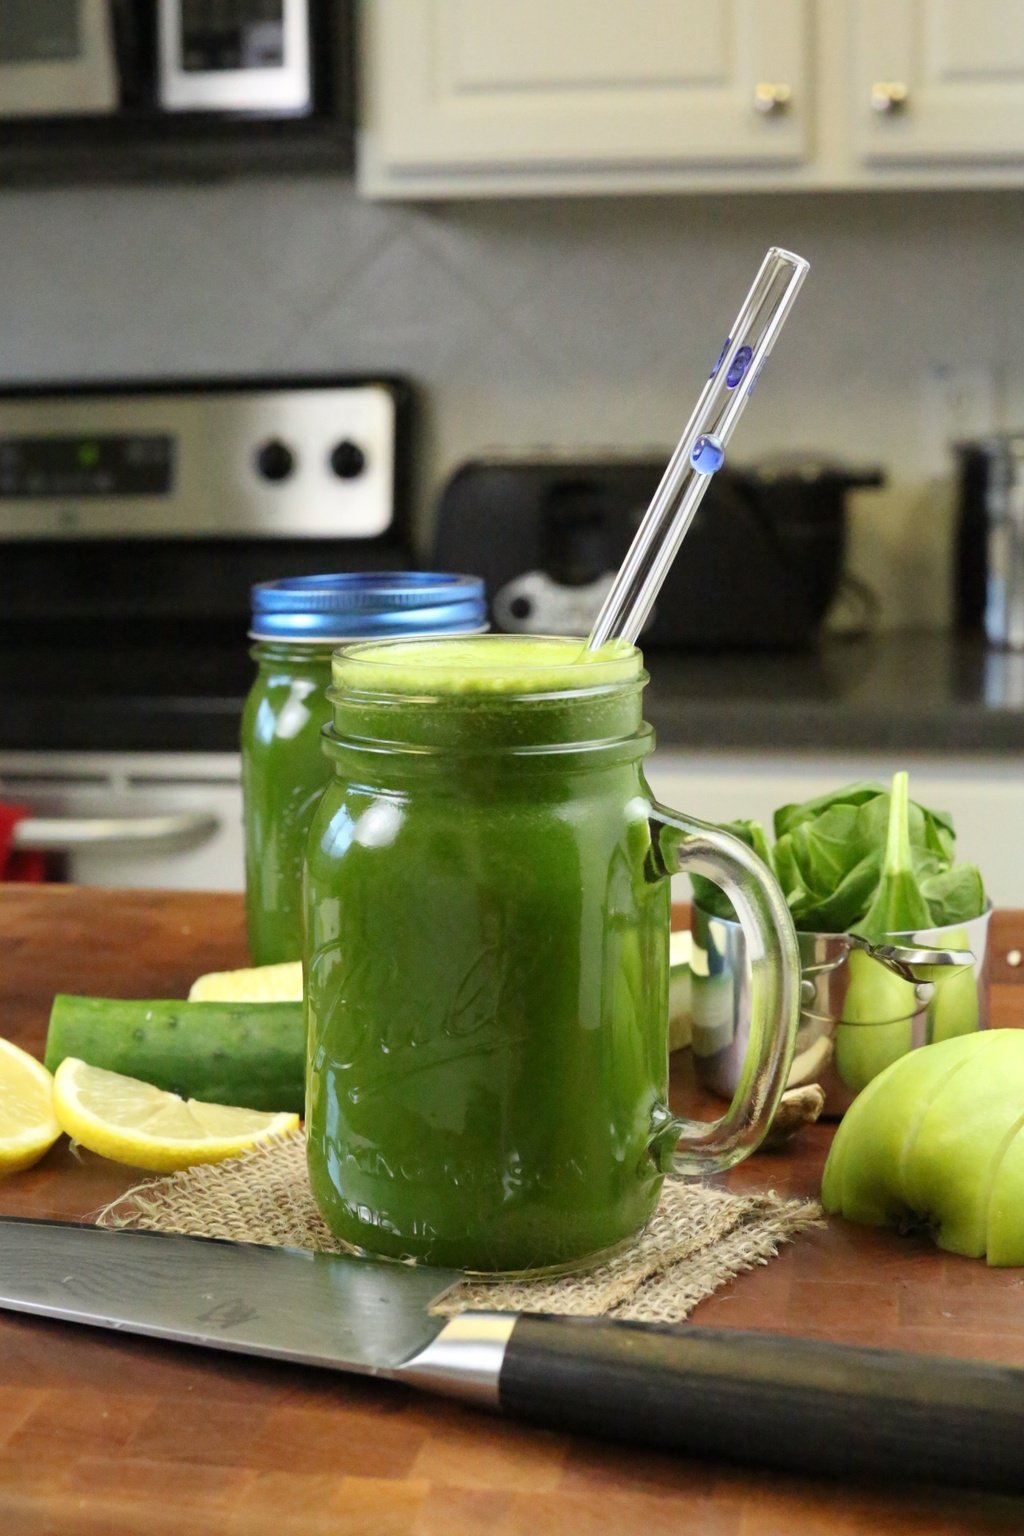 Juicing Recipe: Dr. Oz's Green Drink